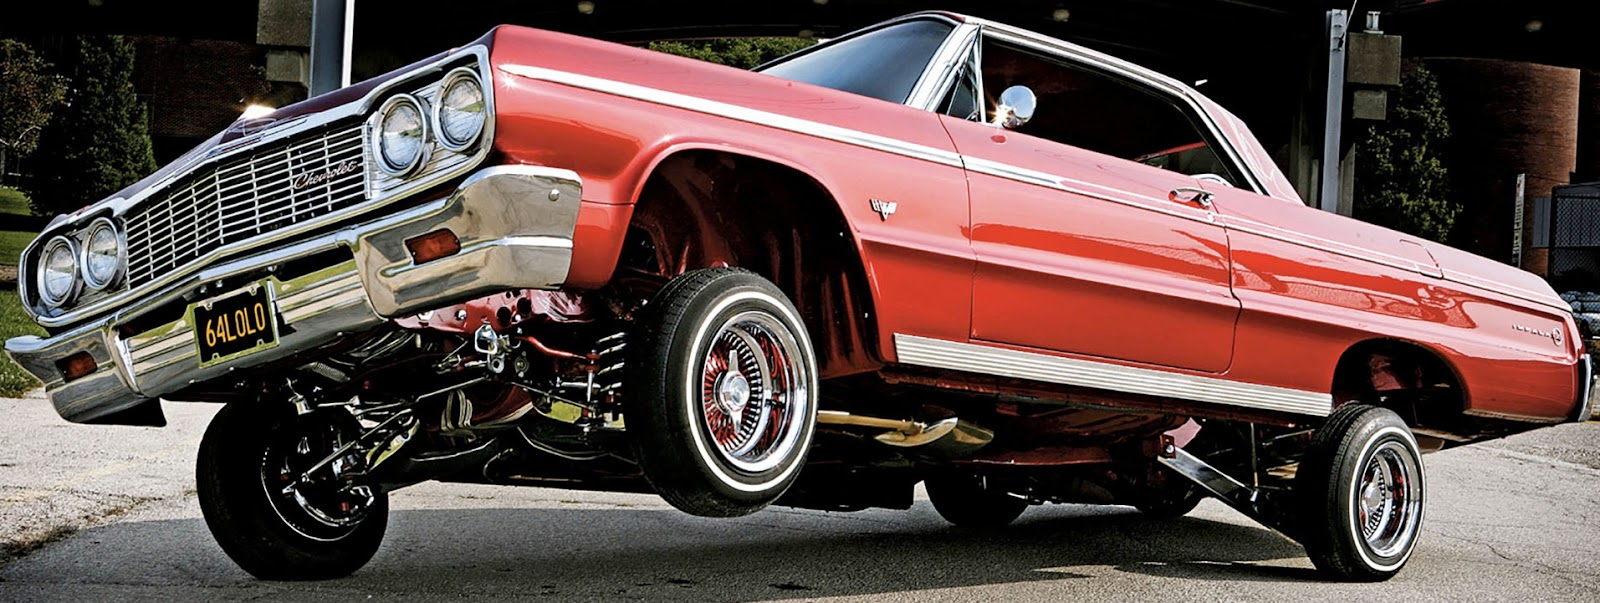 lowrider cars welcome